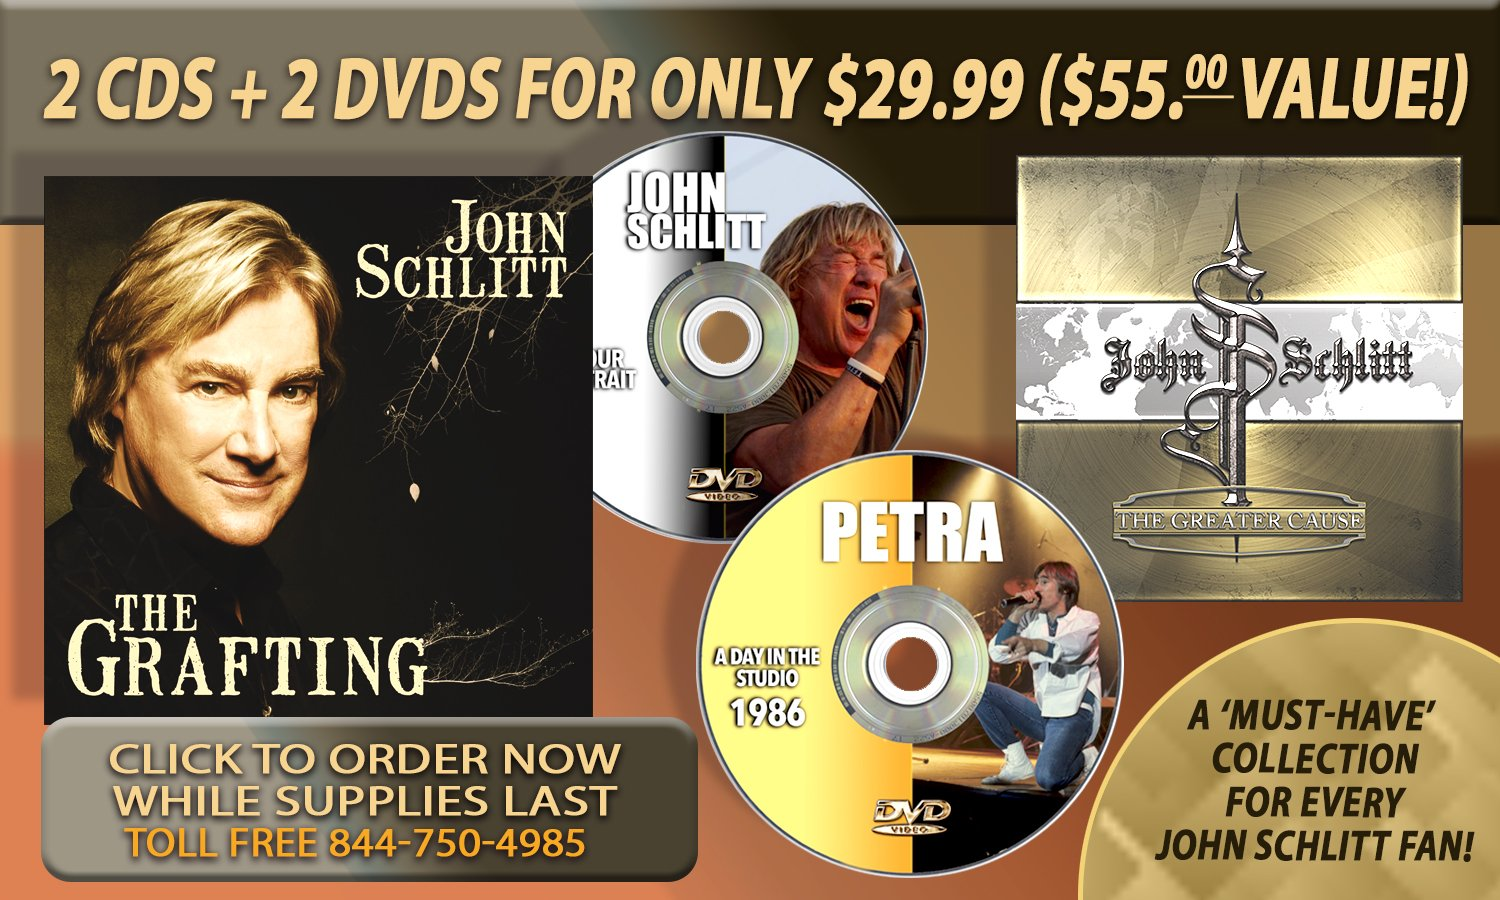 IT'S THE ULTIMATE JOHN SCHLITT COLLECTION WITH EXCLUSIVE DVD DOCUMENTARY!